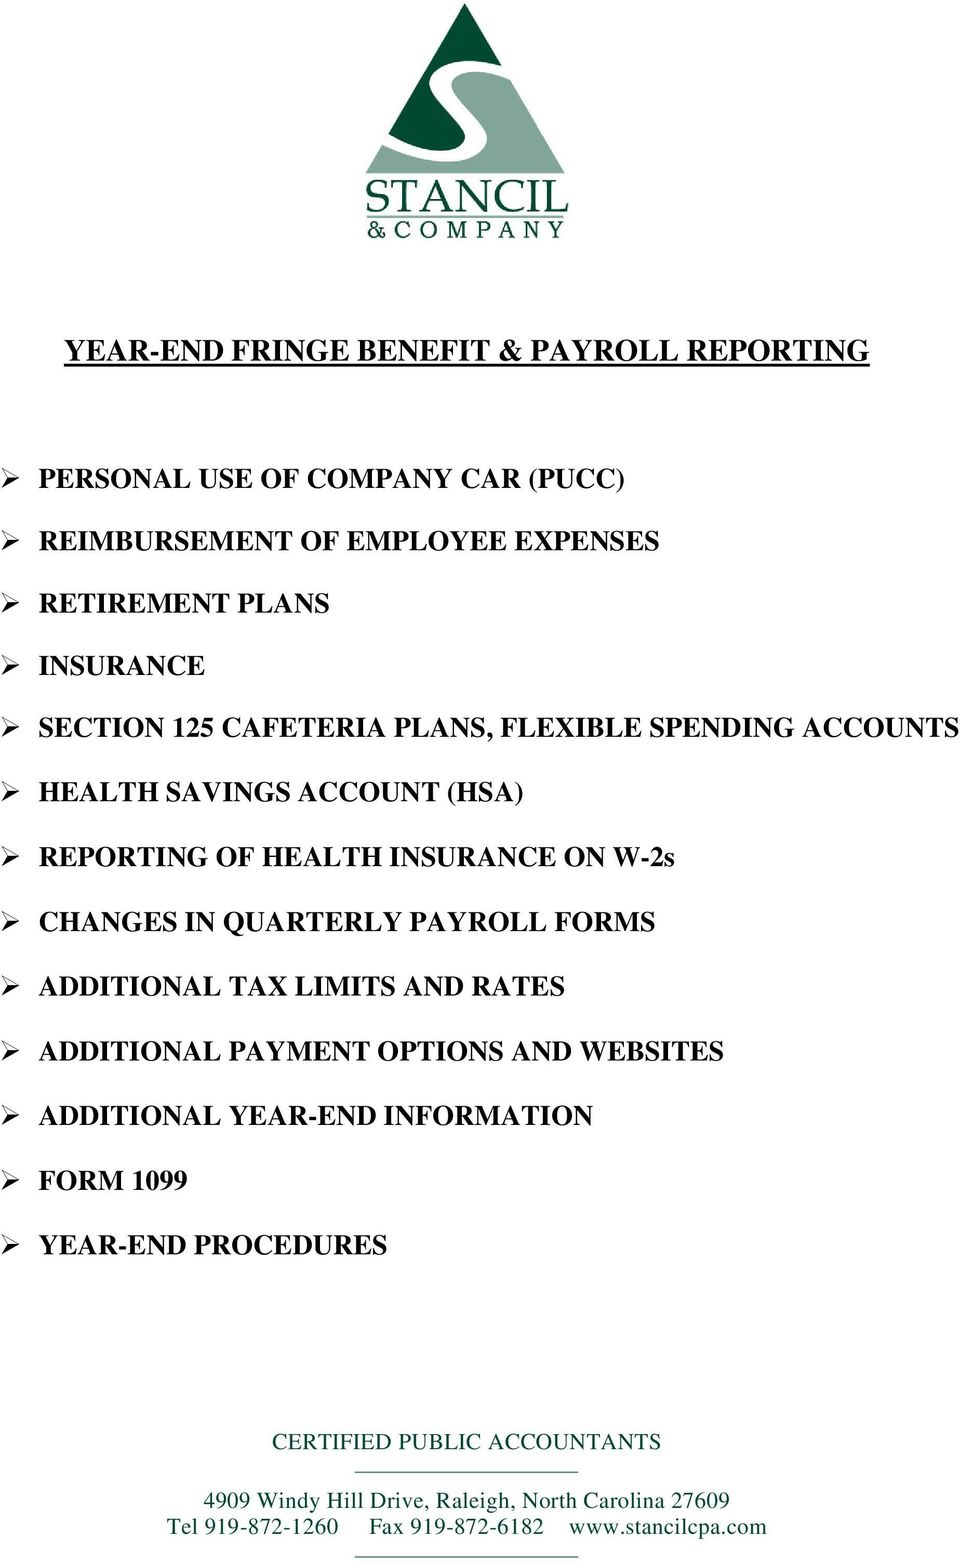 QUARTERLY PAYROLL FORMS ADDITIONAL TAX LIMITS AND RATES ADDITIONAL PAYMENT OPTIONS AND WEBSITES ADDITIONAL YEAR-END INFORMATION FORM 1099